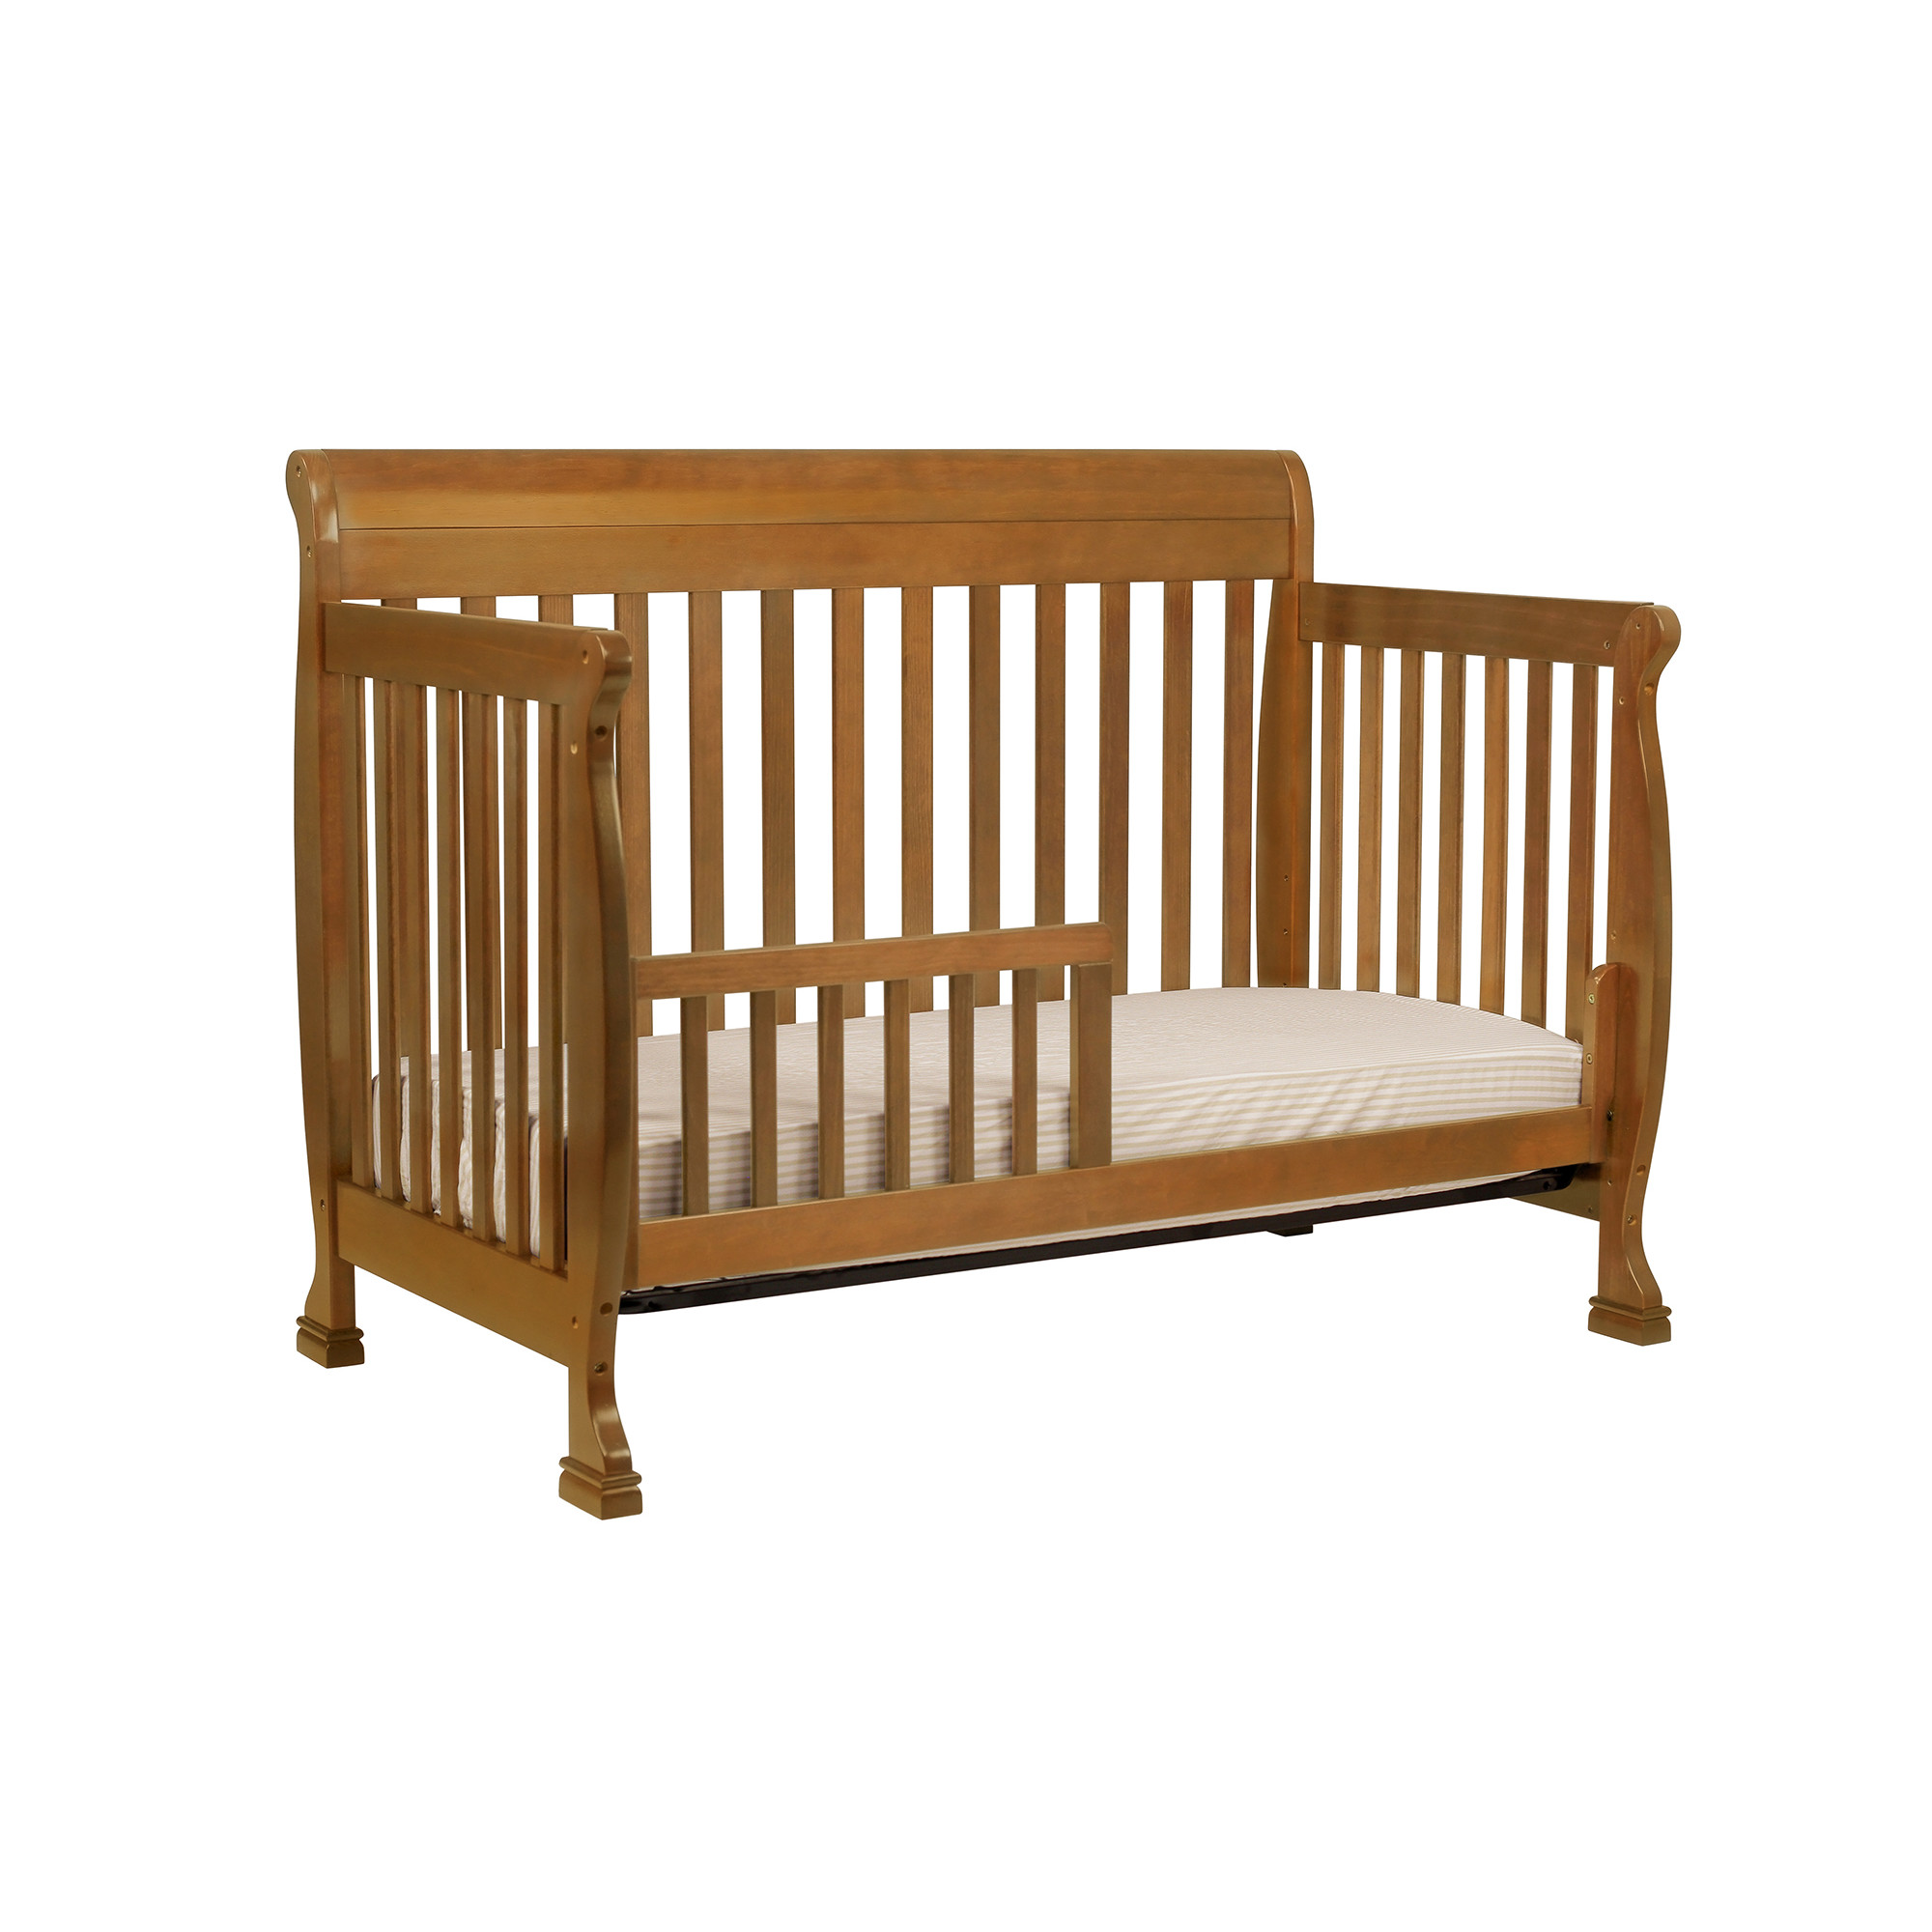 Charming Baby Cache Heritage Lifetime Convertible Crib for Best Baby Crib Choice: Baby Cache Heritage Lifetime Convertible Crib Cherry | Baby Cache Guardrail For Toddler Bed | Baby Cache Heritage Lifetime Convertible Crib